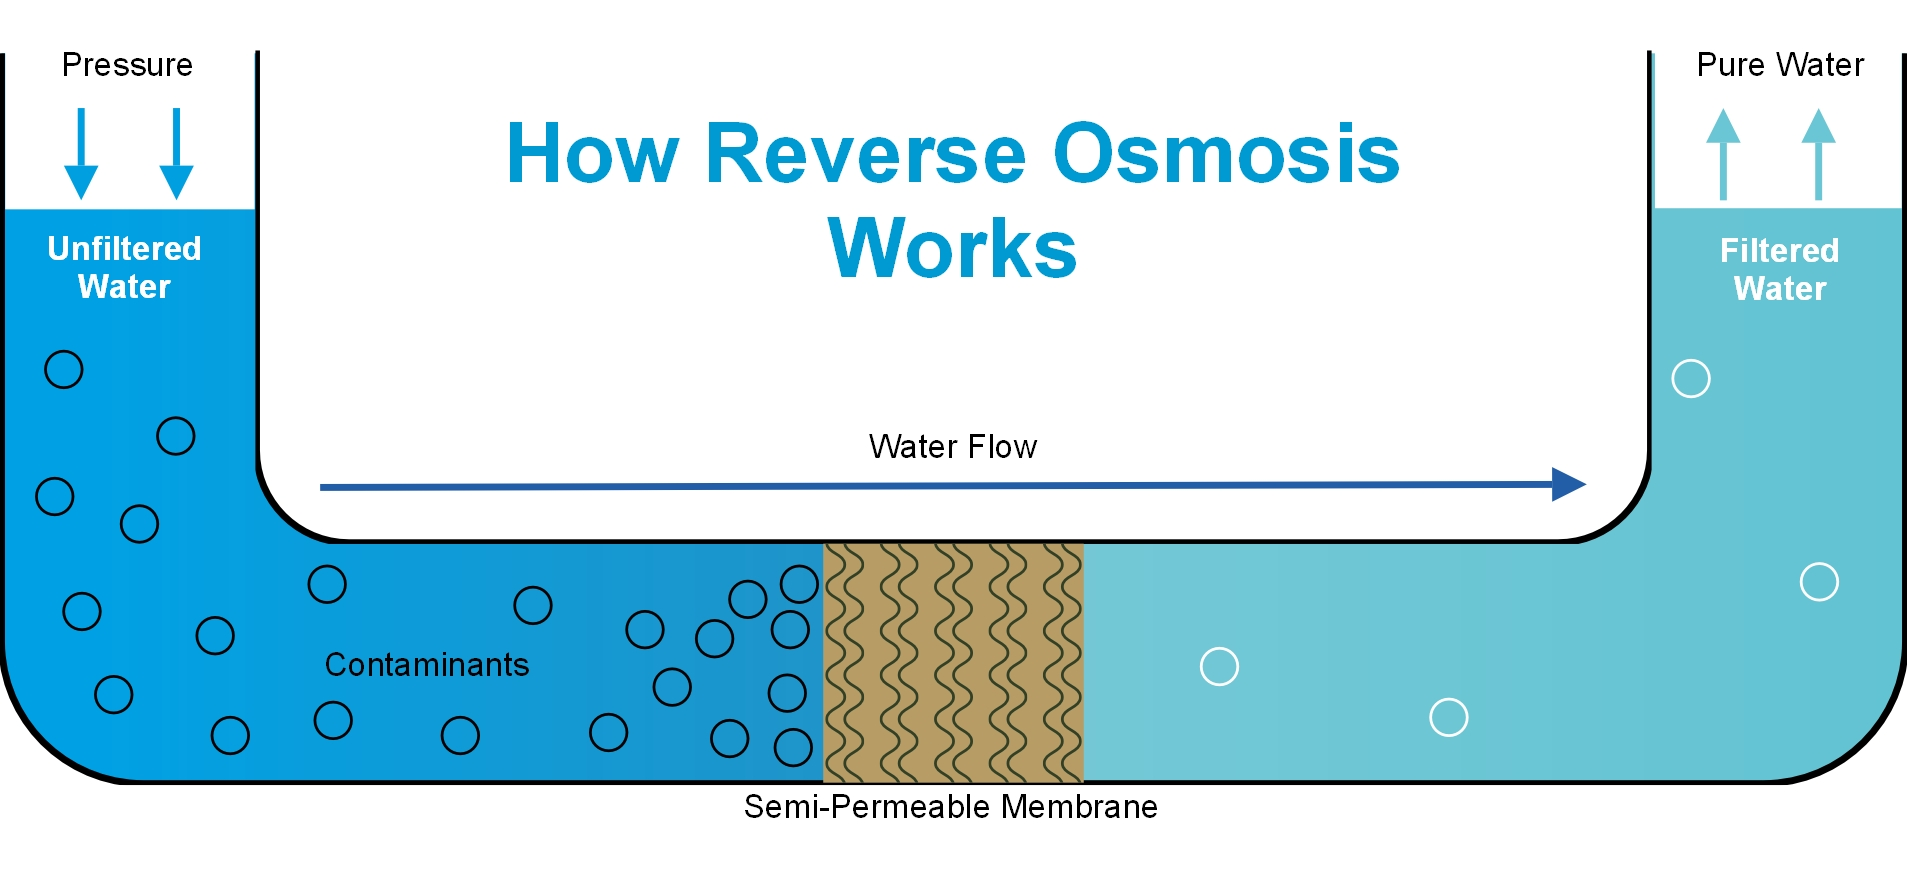 The Ultimate Guide To Reverse Osmosis Water Filter - Waterdrop